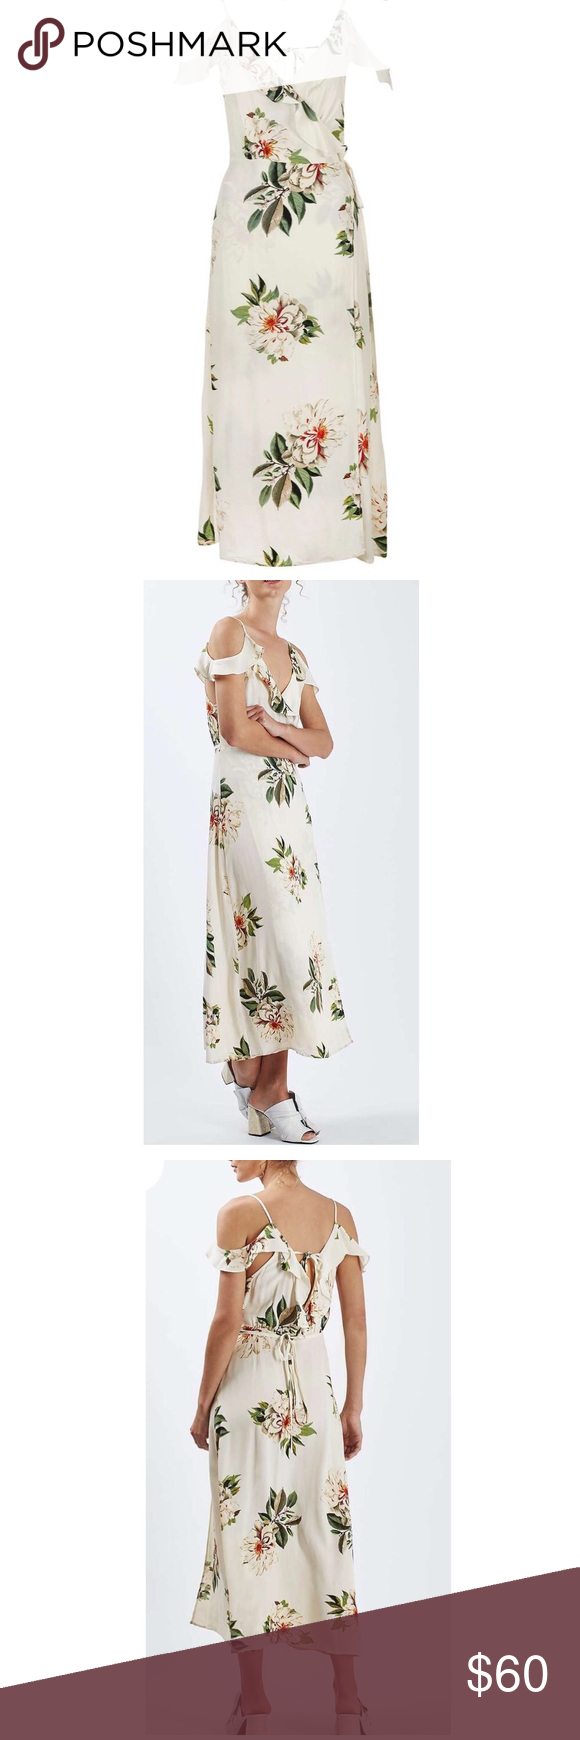 Topshop Floral Dress Over 40 Off Retail Price Nwt Topshop